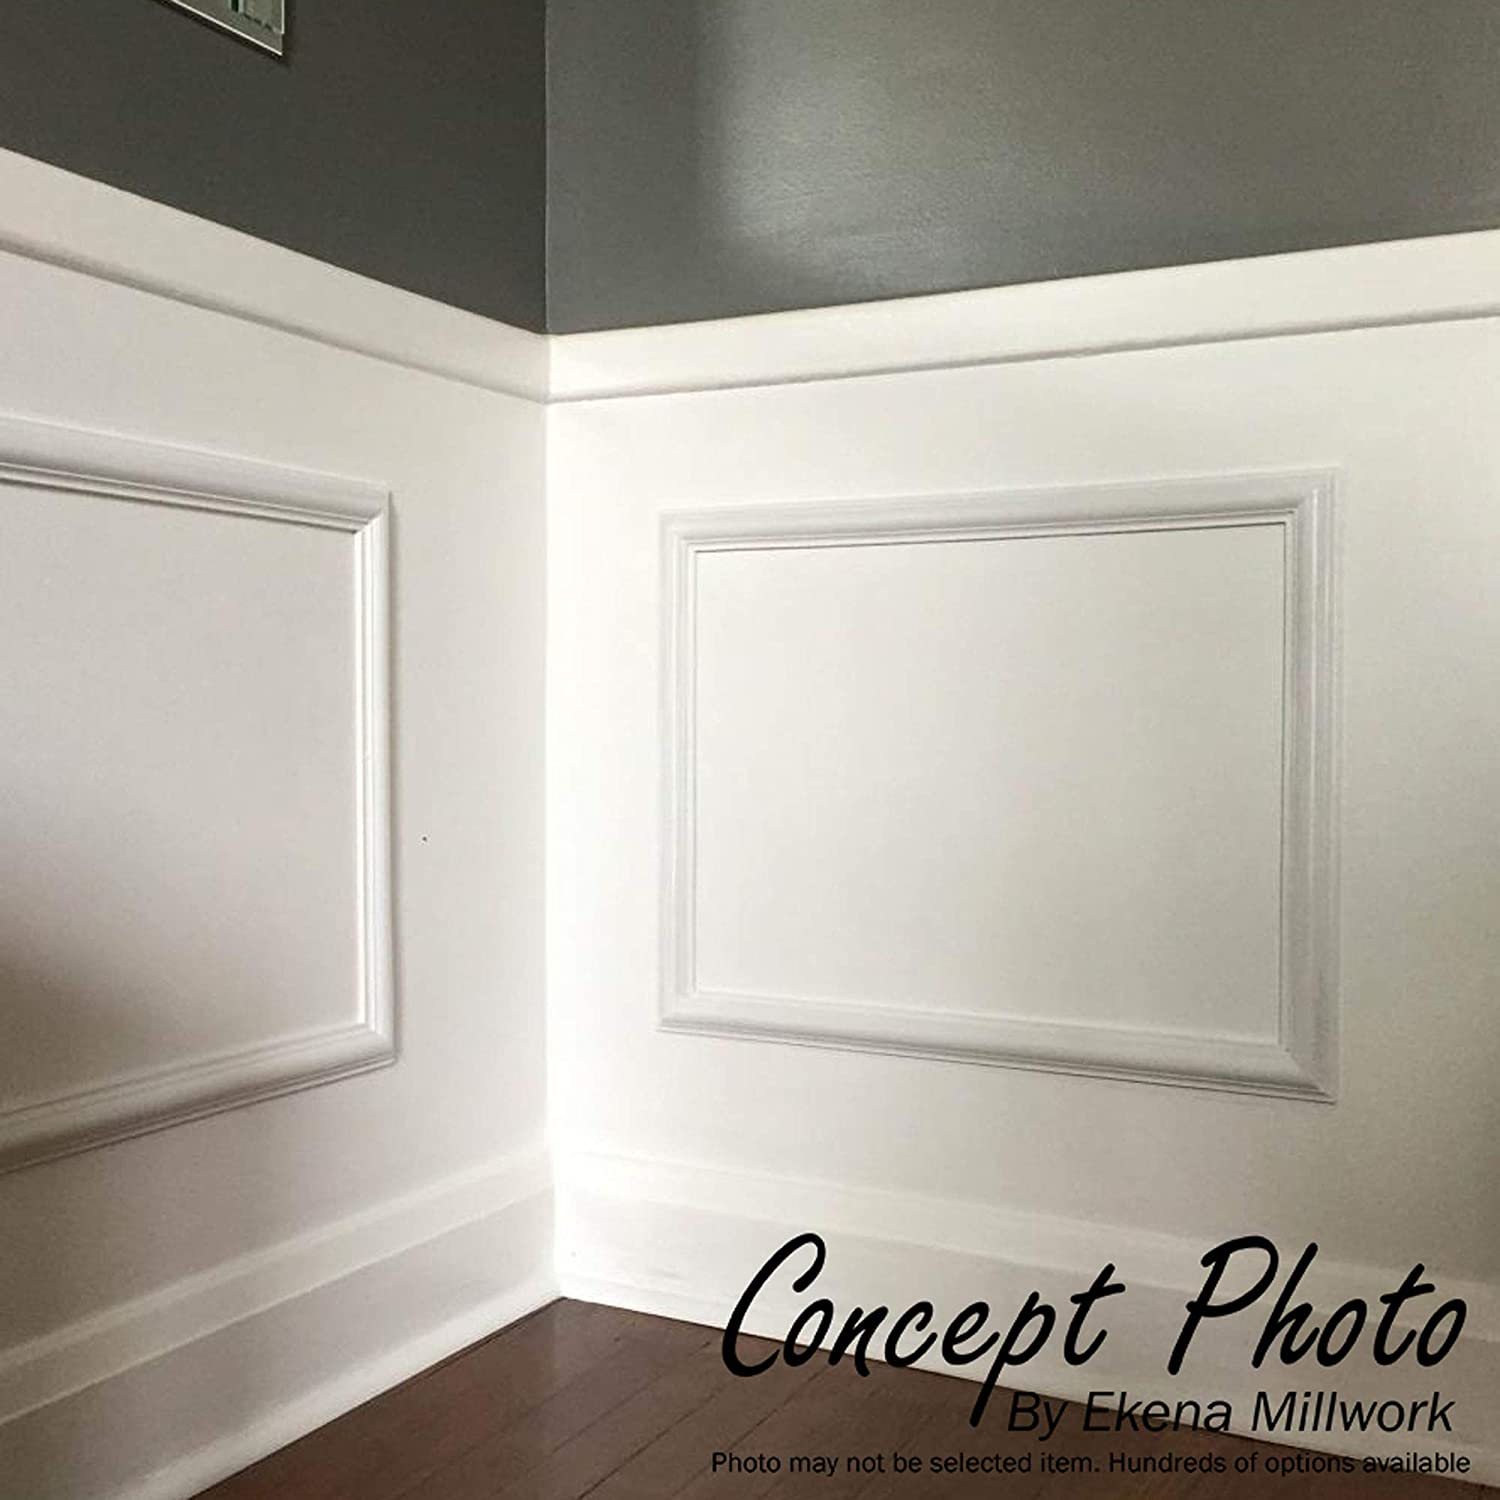 2-Pack Ekena Millwork PNL08X16AS-02-CASE-2 8W x 16H x 1//2P Ashford Molded Scalloped Wainscot Wall Panel x x Factory Primed White 2 Piece